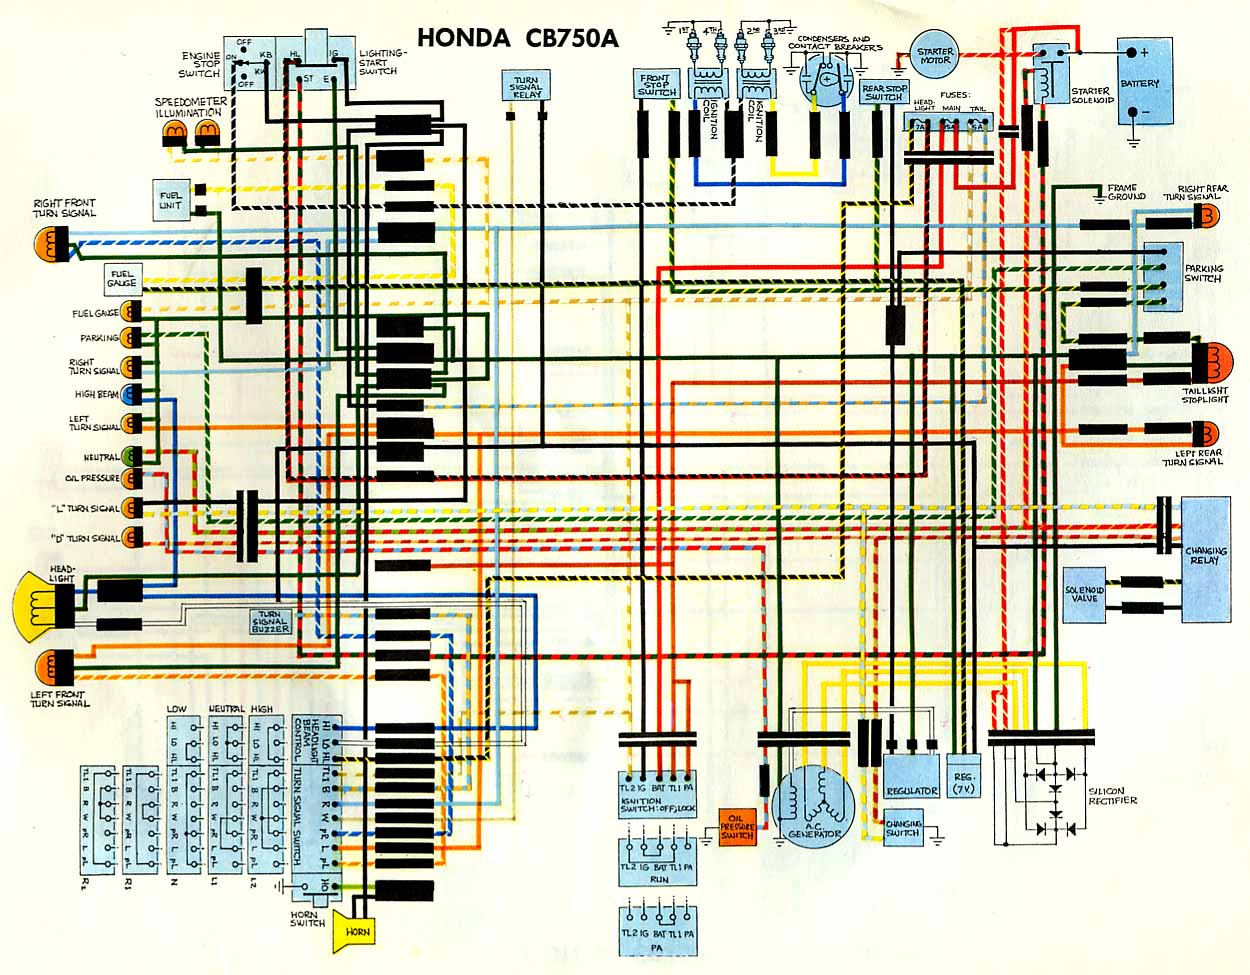 CB750auto honda cb750 wiring diagram 1970 honda cb750 wiring diagram \u2022 free 1991 honda nighthawk 750 wiring schematic at alyssarenee.co